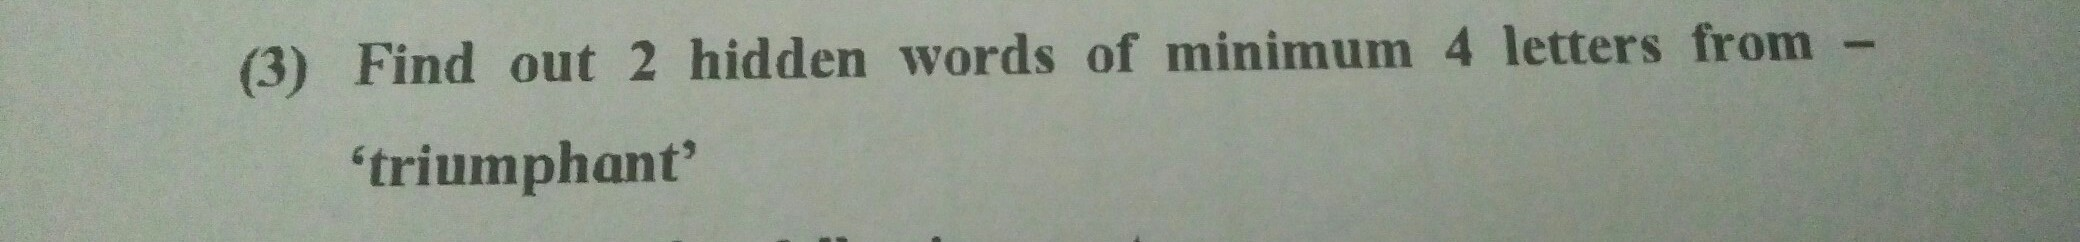 Find Out 2 Hidden Words Of Minimum 4 Letters From Triumphant